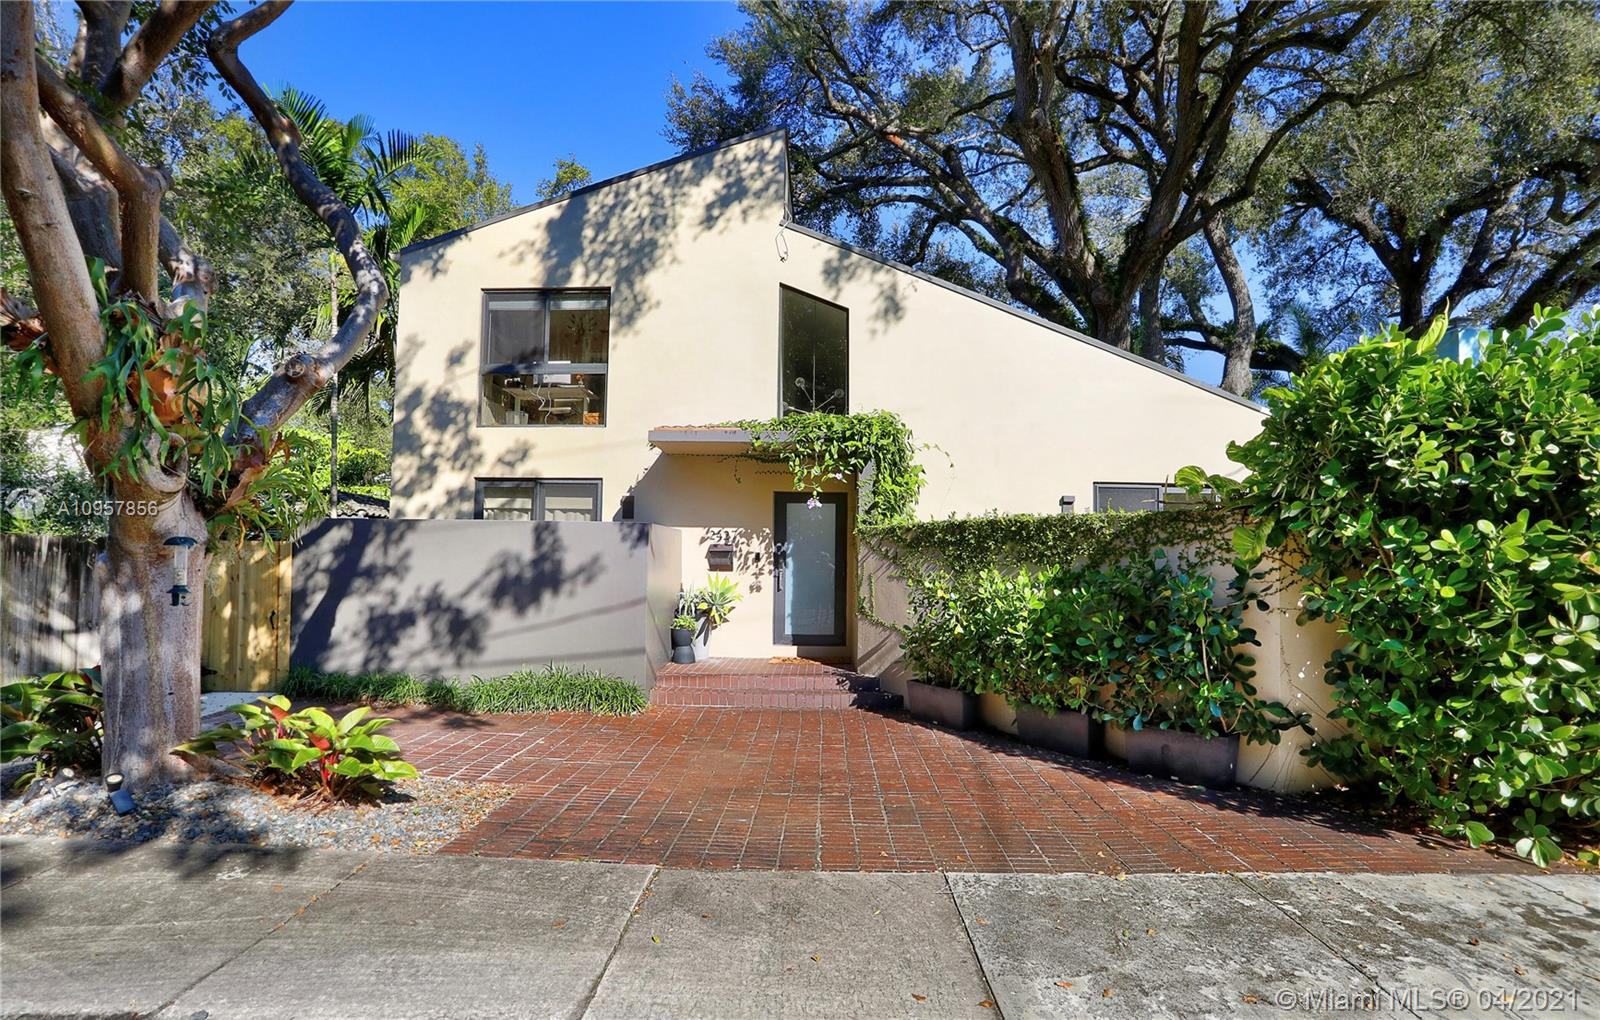 Fully updated contemporary Coconut Grove 3/2.5 bath home on quite 'no through traffic' St, PLUS A BONUS LOFT SPACE. This North Grove home is built around a 100+year old Oak tree & features volume ceilings, gorgeous wood floors in bedrooms and porcelain tiled floors in living area, w/high impact windows & doors throughout! Bedroom with fully remodeled bathroom located on the 1st floor. Upstairs; 2 bedrooms w/remodeled Jack & Jill bathroom. Loft currently being used as a 4th bedroom, but is ideal as a kids playroom or office. Separate laundry room off  kitchen w/storage space. There are 3 patio spaces which include a Jacuzzi hot tub and pergola for entertaining. The pergola has a custom dining table which comfortably seats 12 people. Flood zone 'X'. Come and see this pristine turn key home!